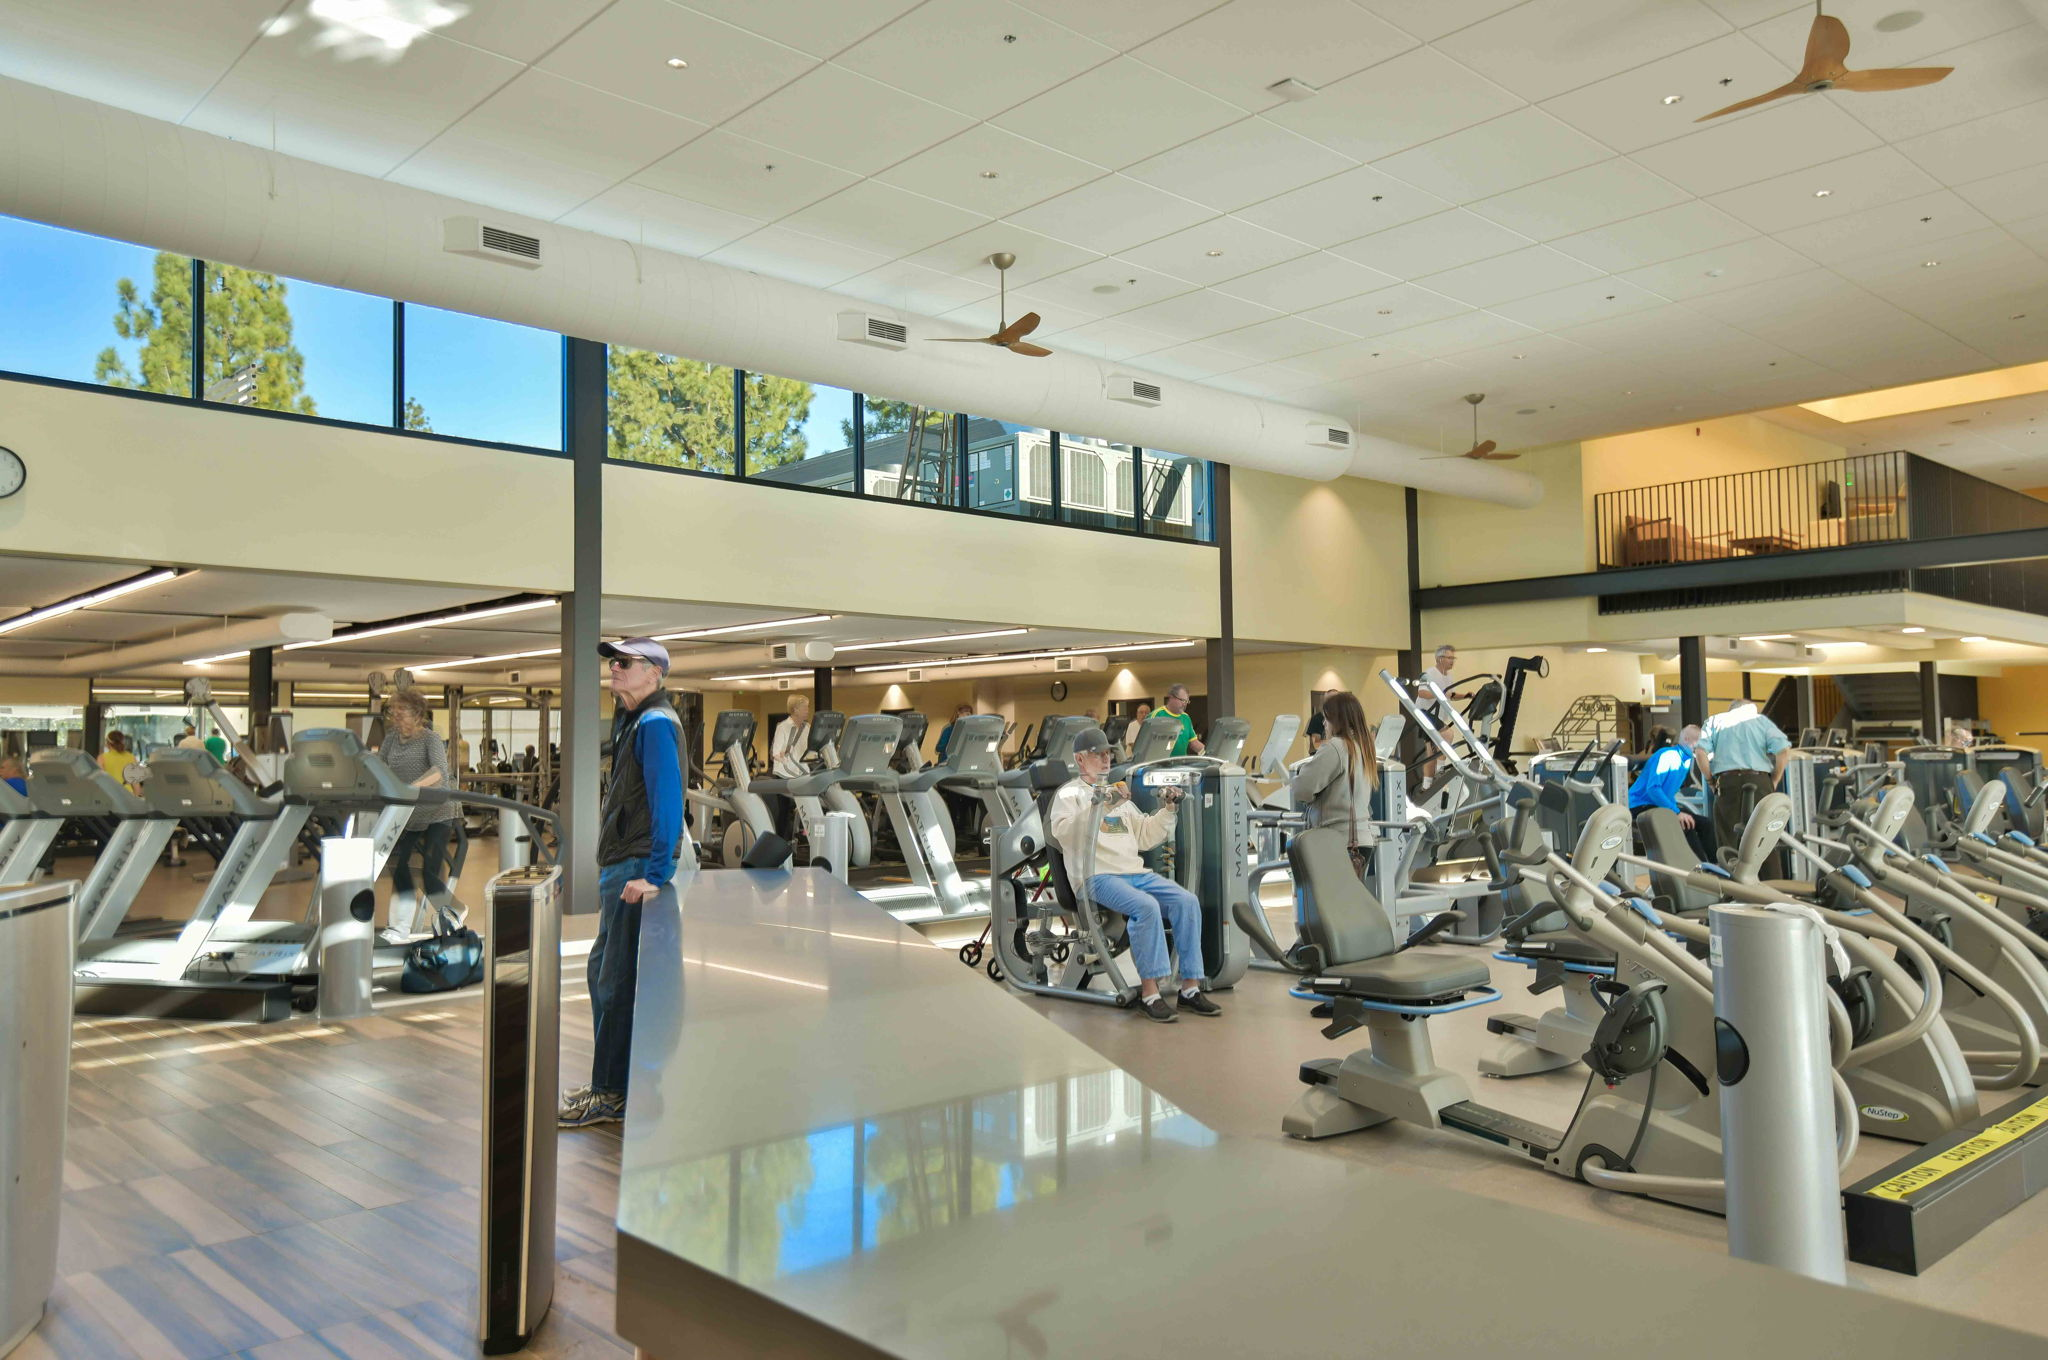 Gym at the Fitness Center